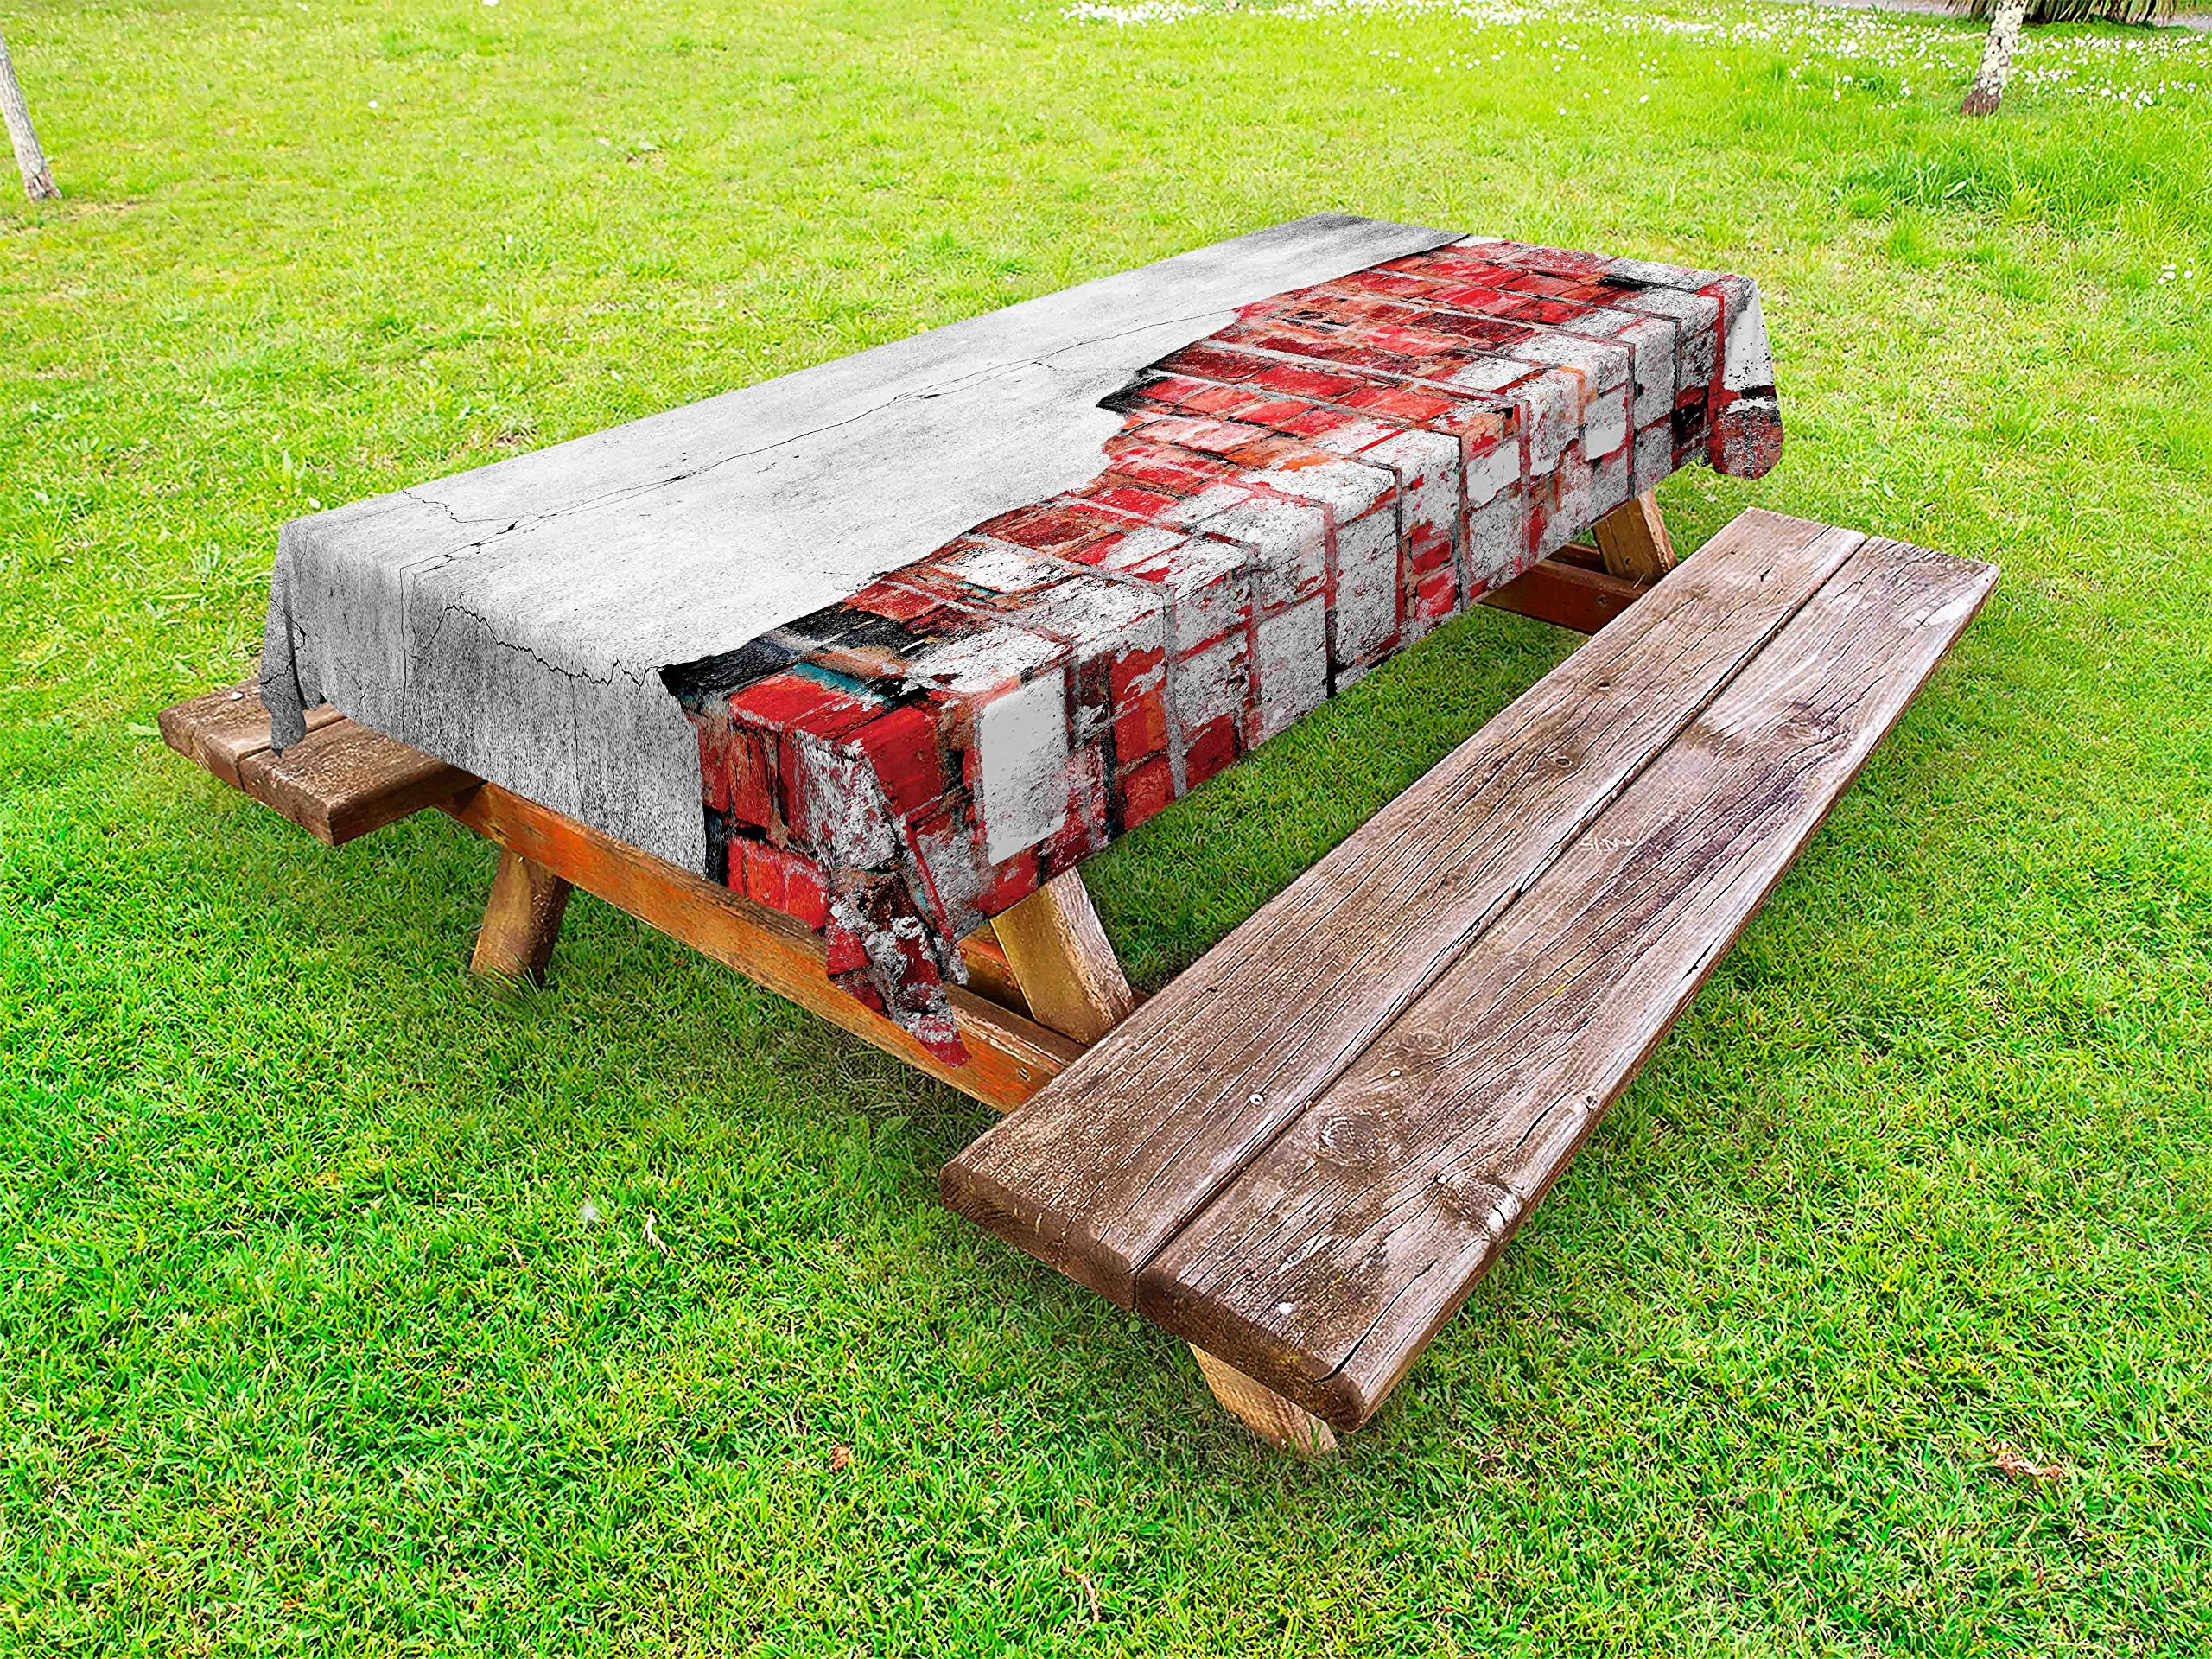 Lunarable Red and Black Outdoor Tablecloth, Cracked Old Spooky House Wall with Tiles Grunge Street Art Image, Decorative Washable Picnic Table Cloth, 58 X 104 inches, Pale Grey and White